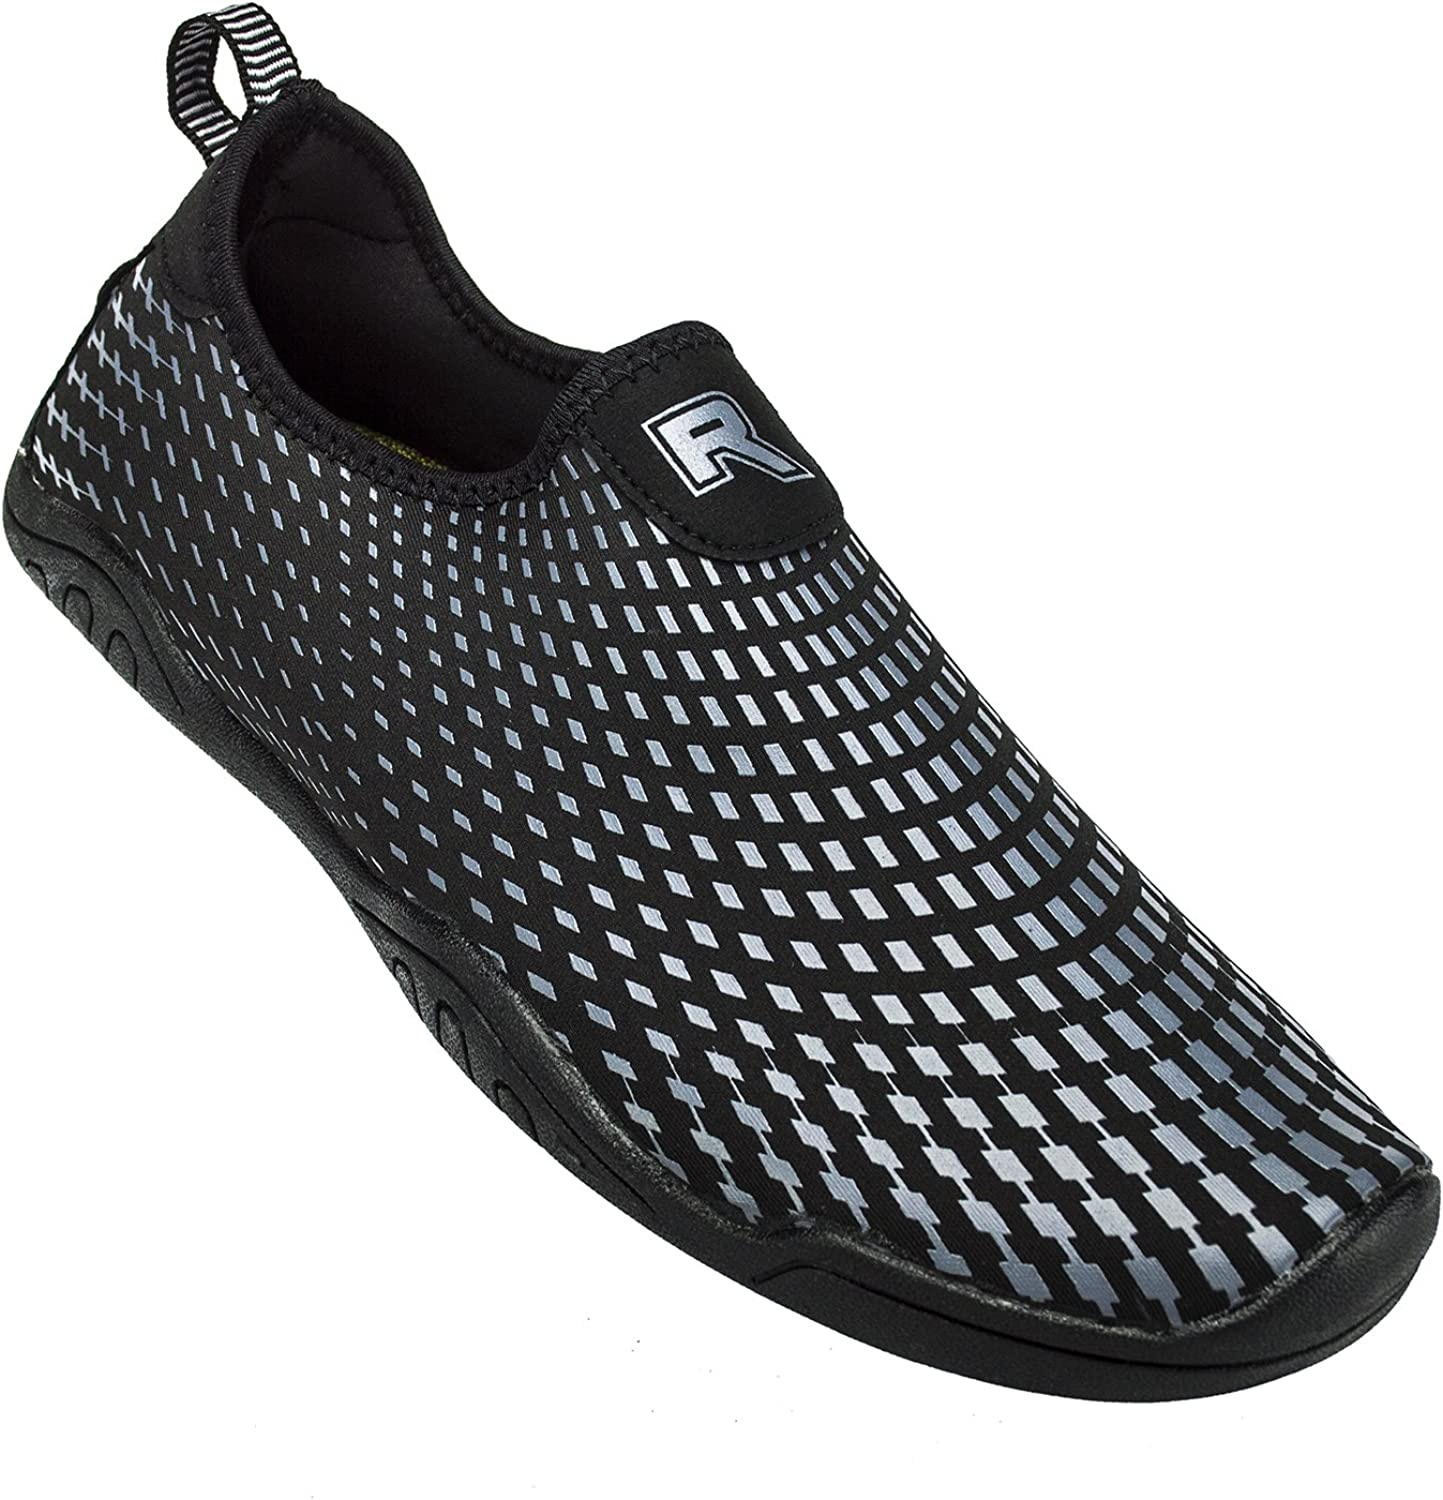 Cambridge Select Men's Closed Toe Lightweight Breathable Slip-On Water shoes